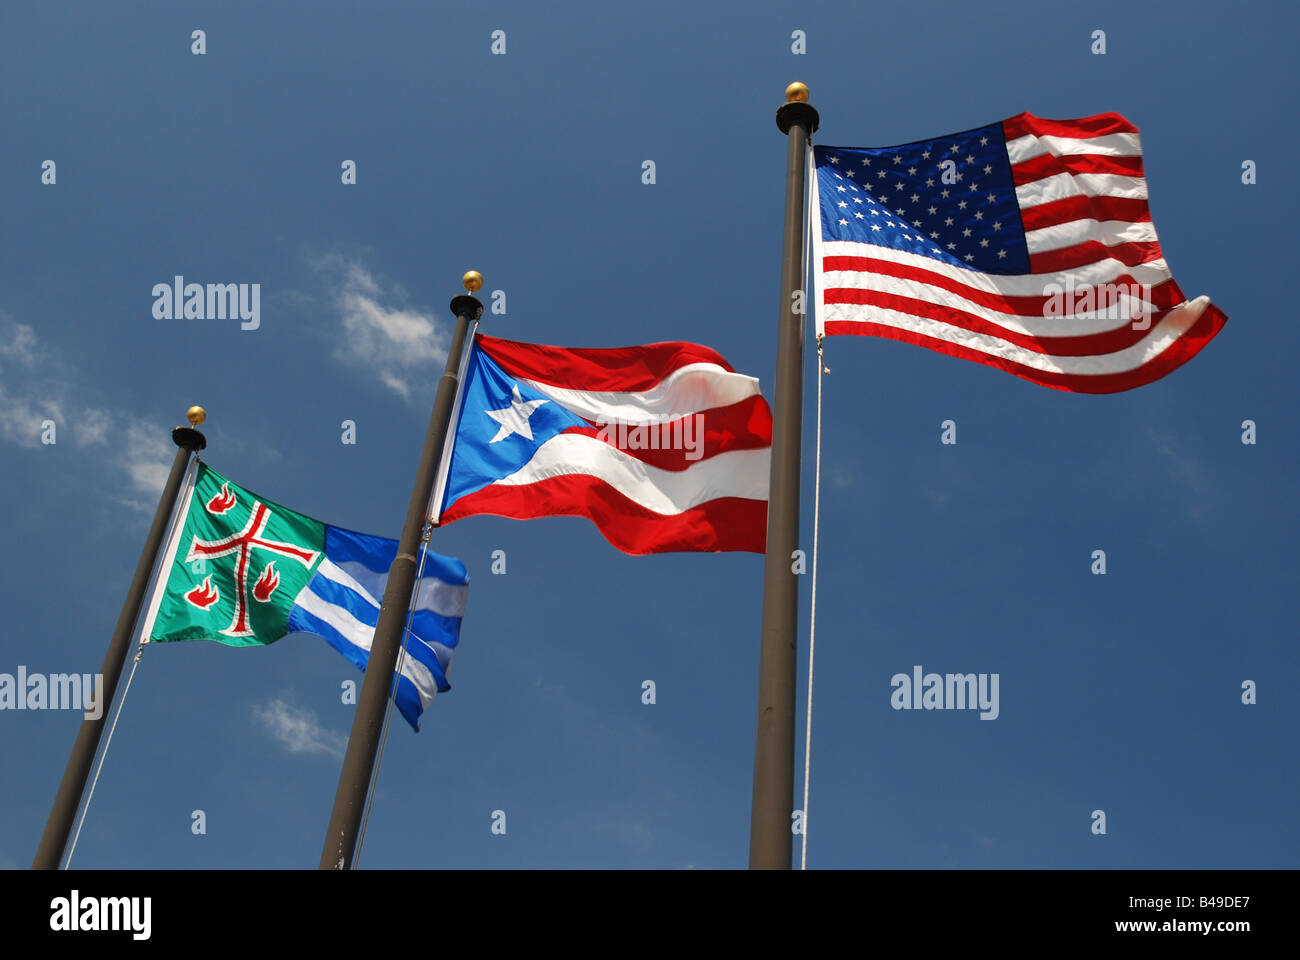 The flags of Mayagüez, Puerto Rico and the United States of America. - Stock Image